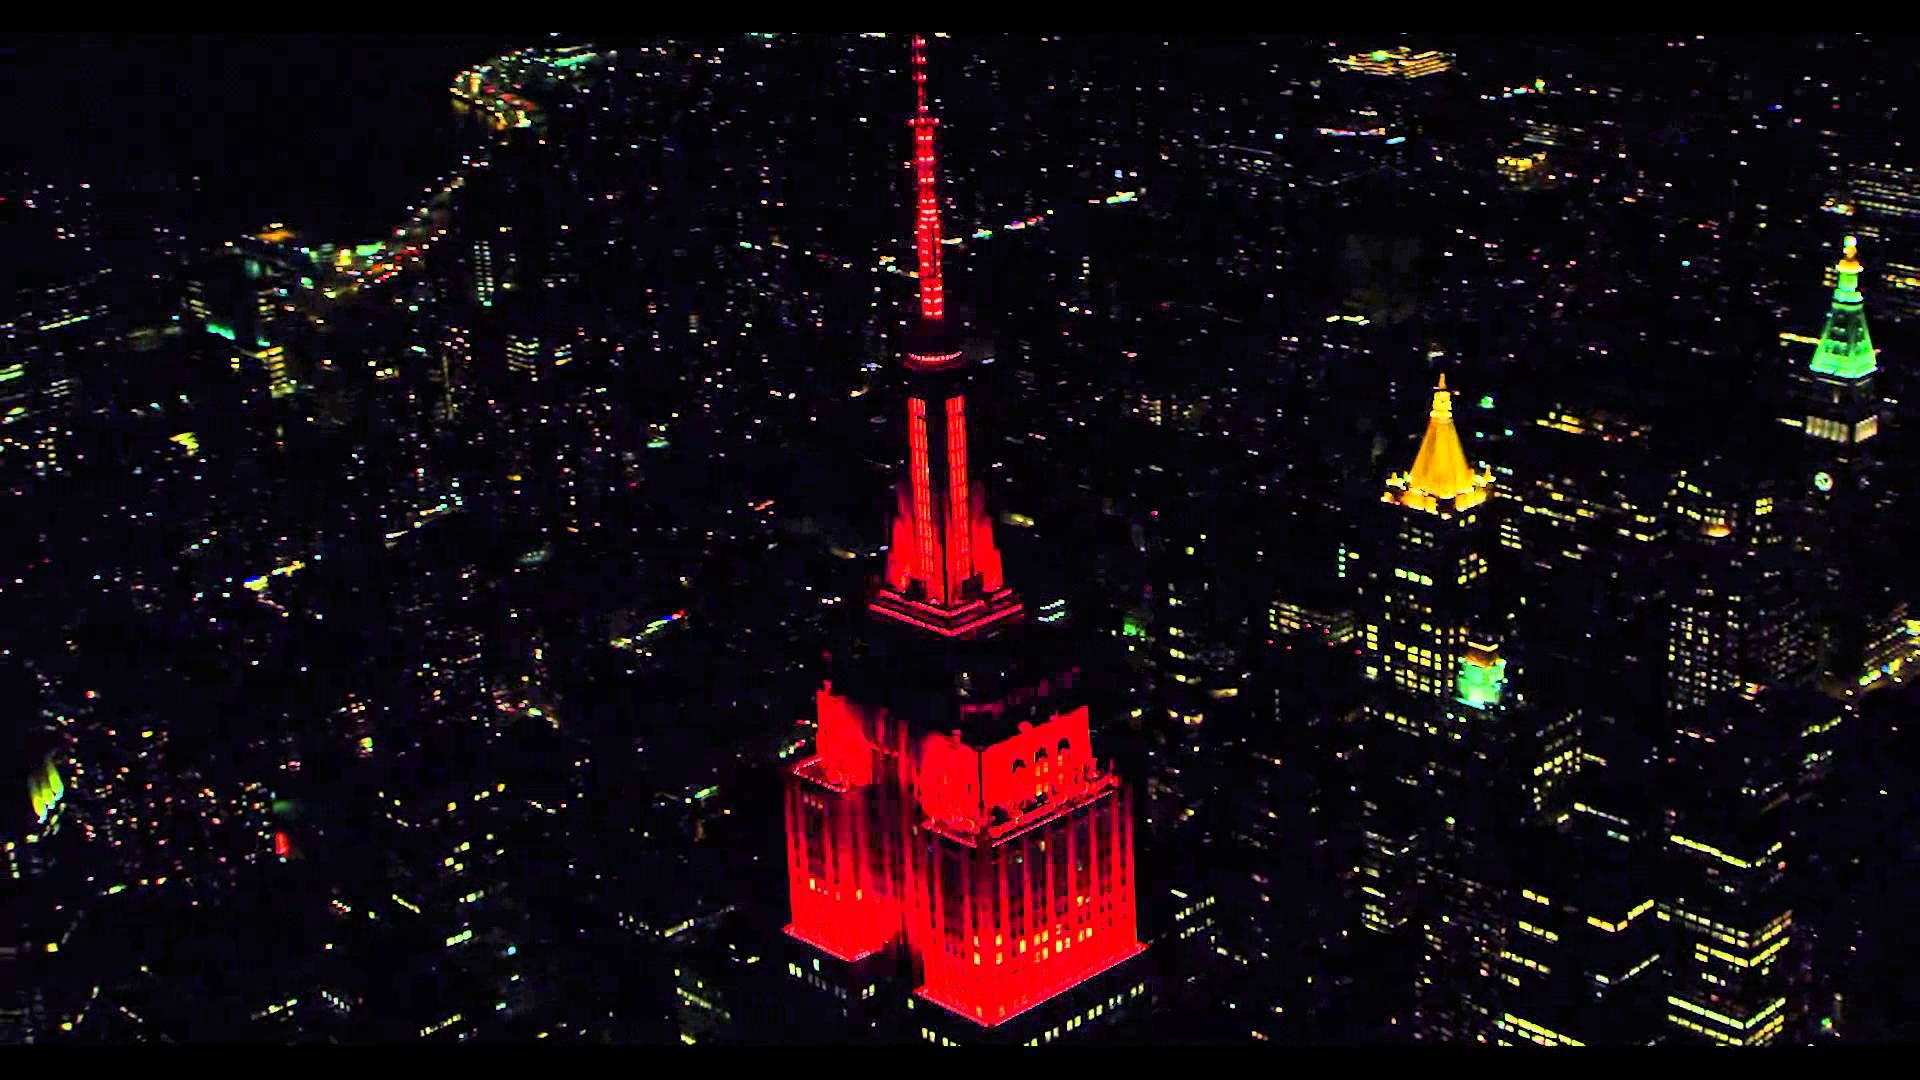 October 31, 2015 The Empire State Building and